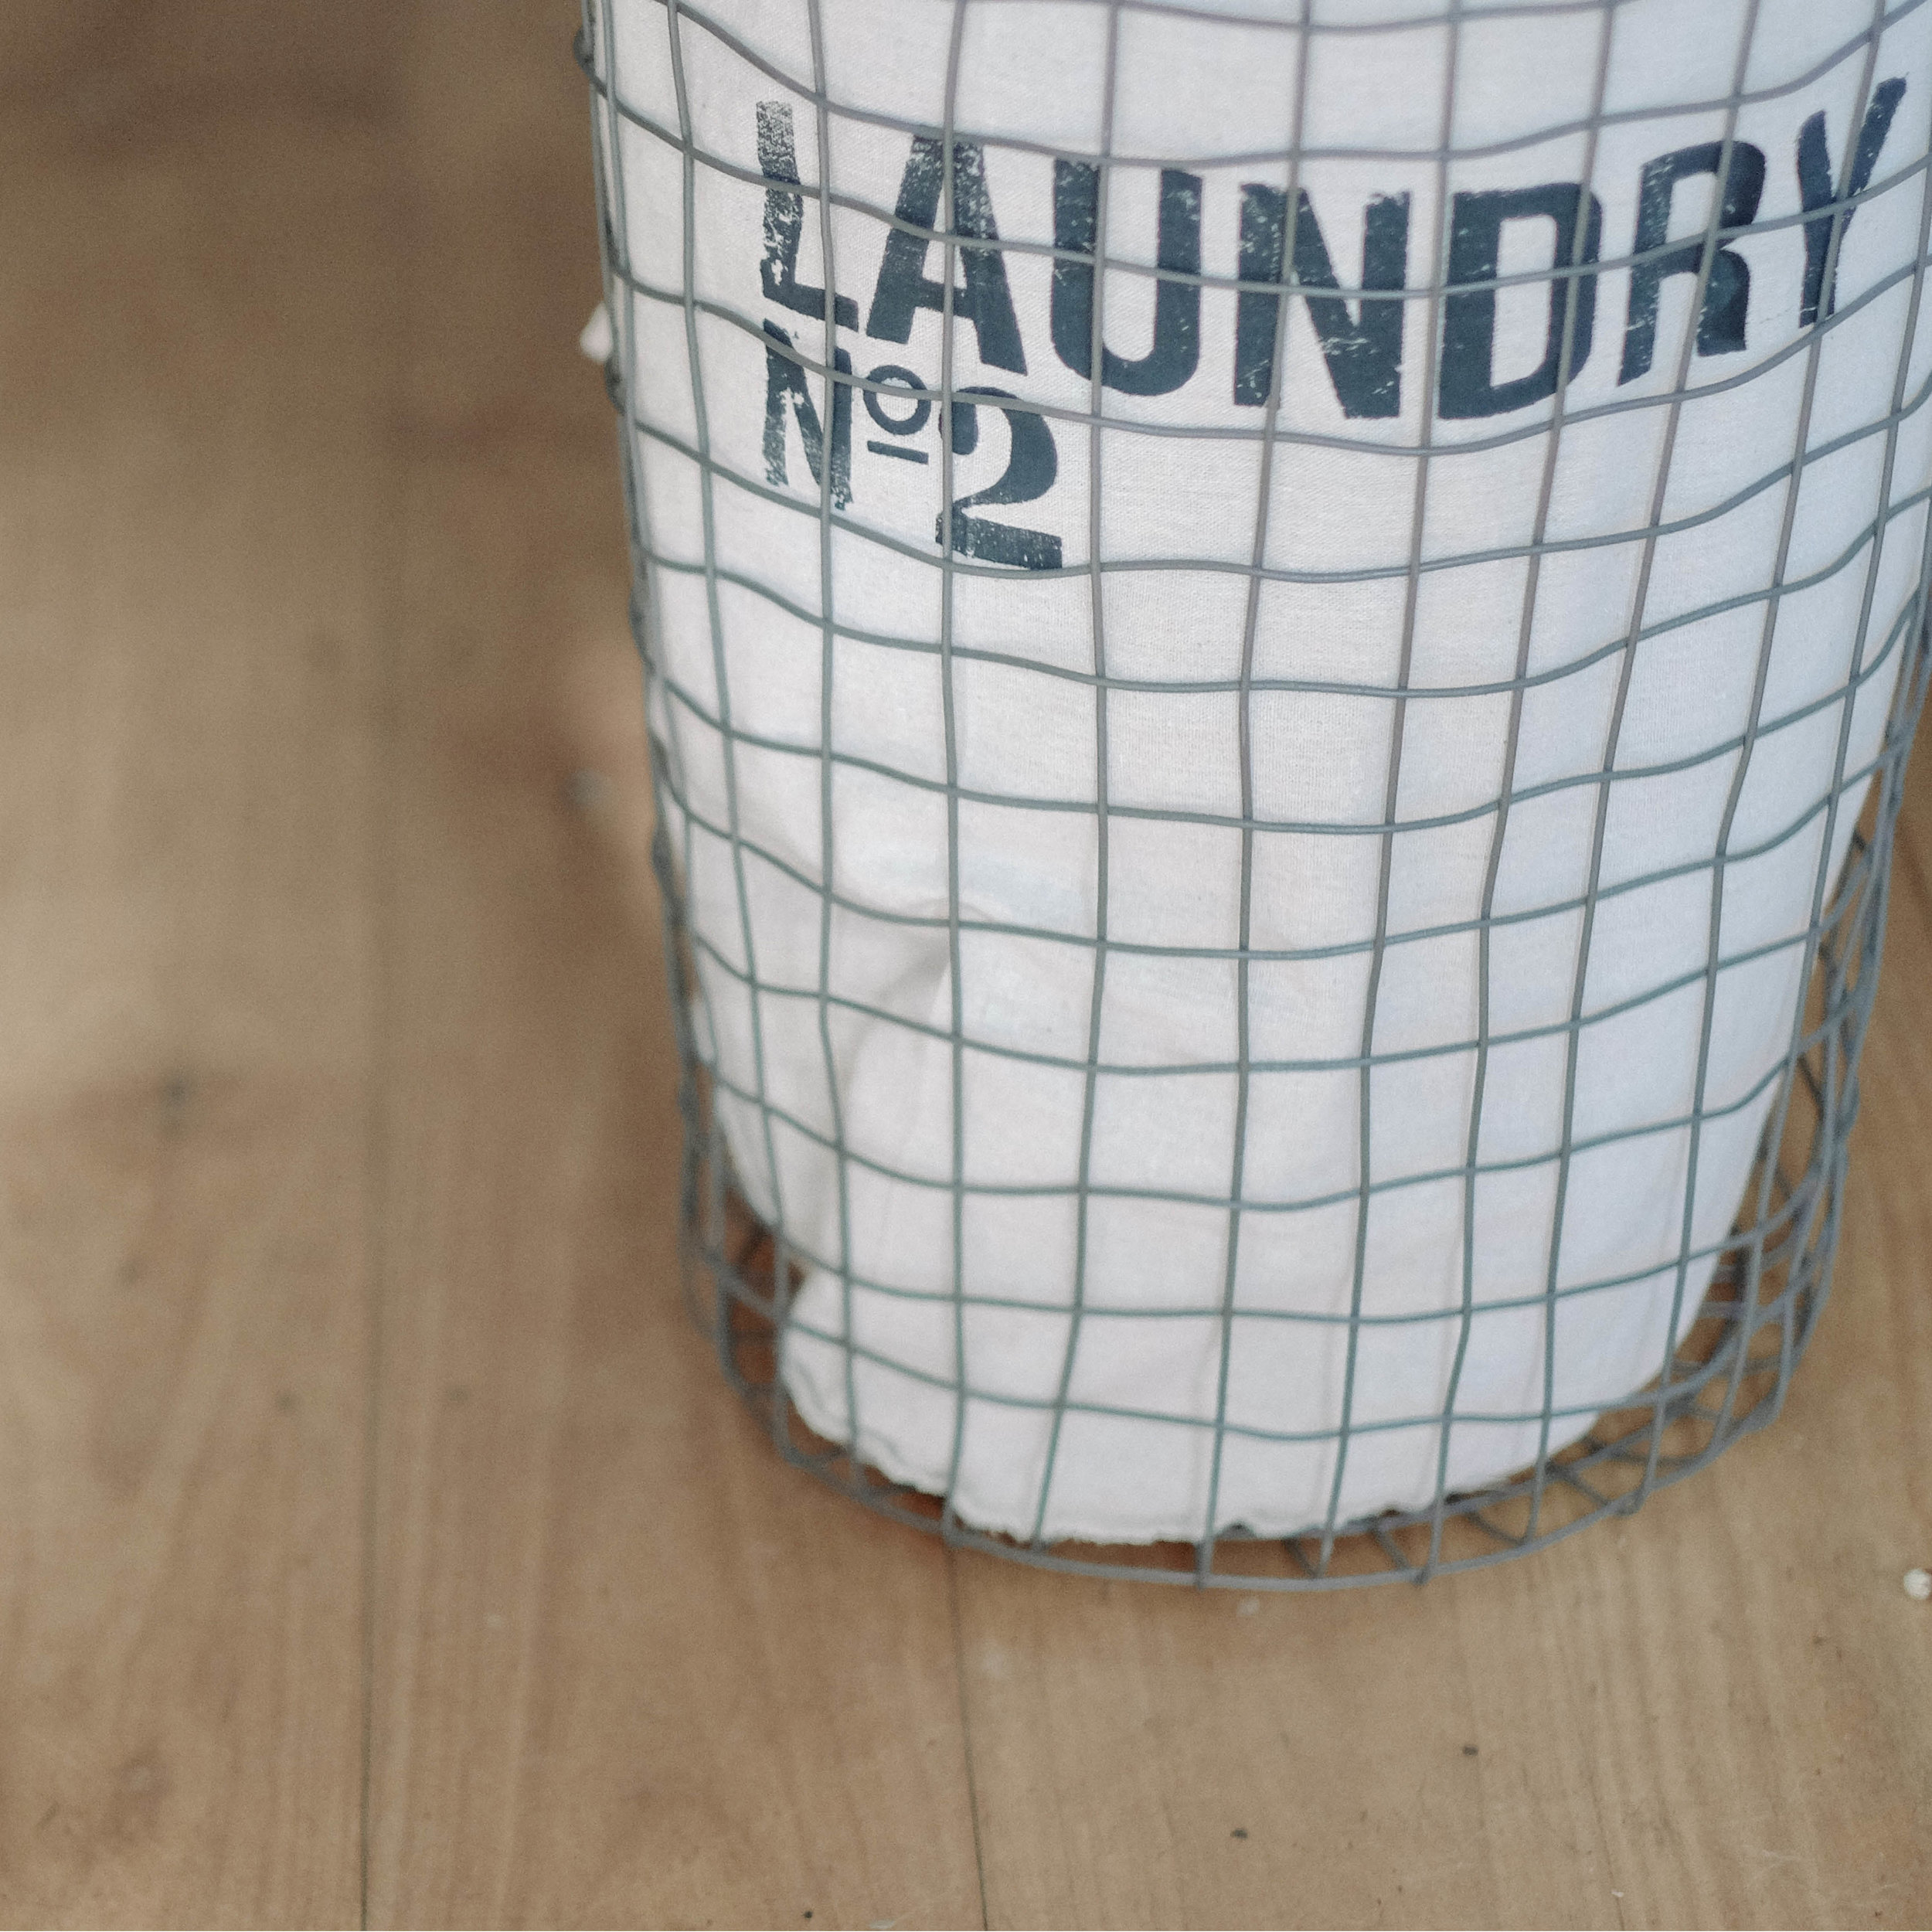 LAUNDRY - Keeping your clothes clean can be green too! We carry wool dryer balls, which eliminate the need for dryer sheets. We have non-clorhine bleach, eco laundry soap.